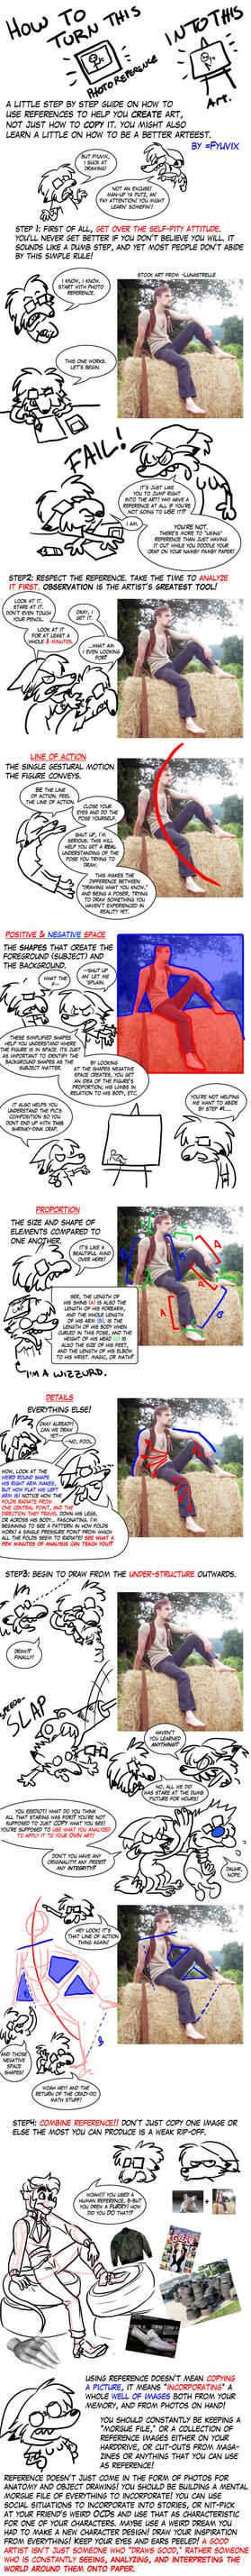 Tutorial-Using Photo Reference by ThirdPotato